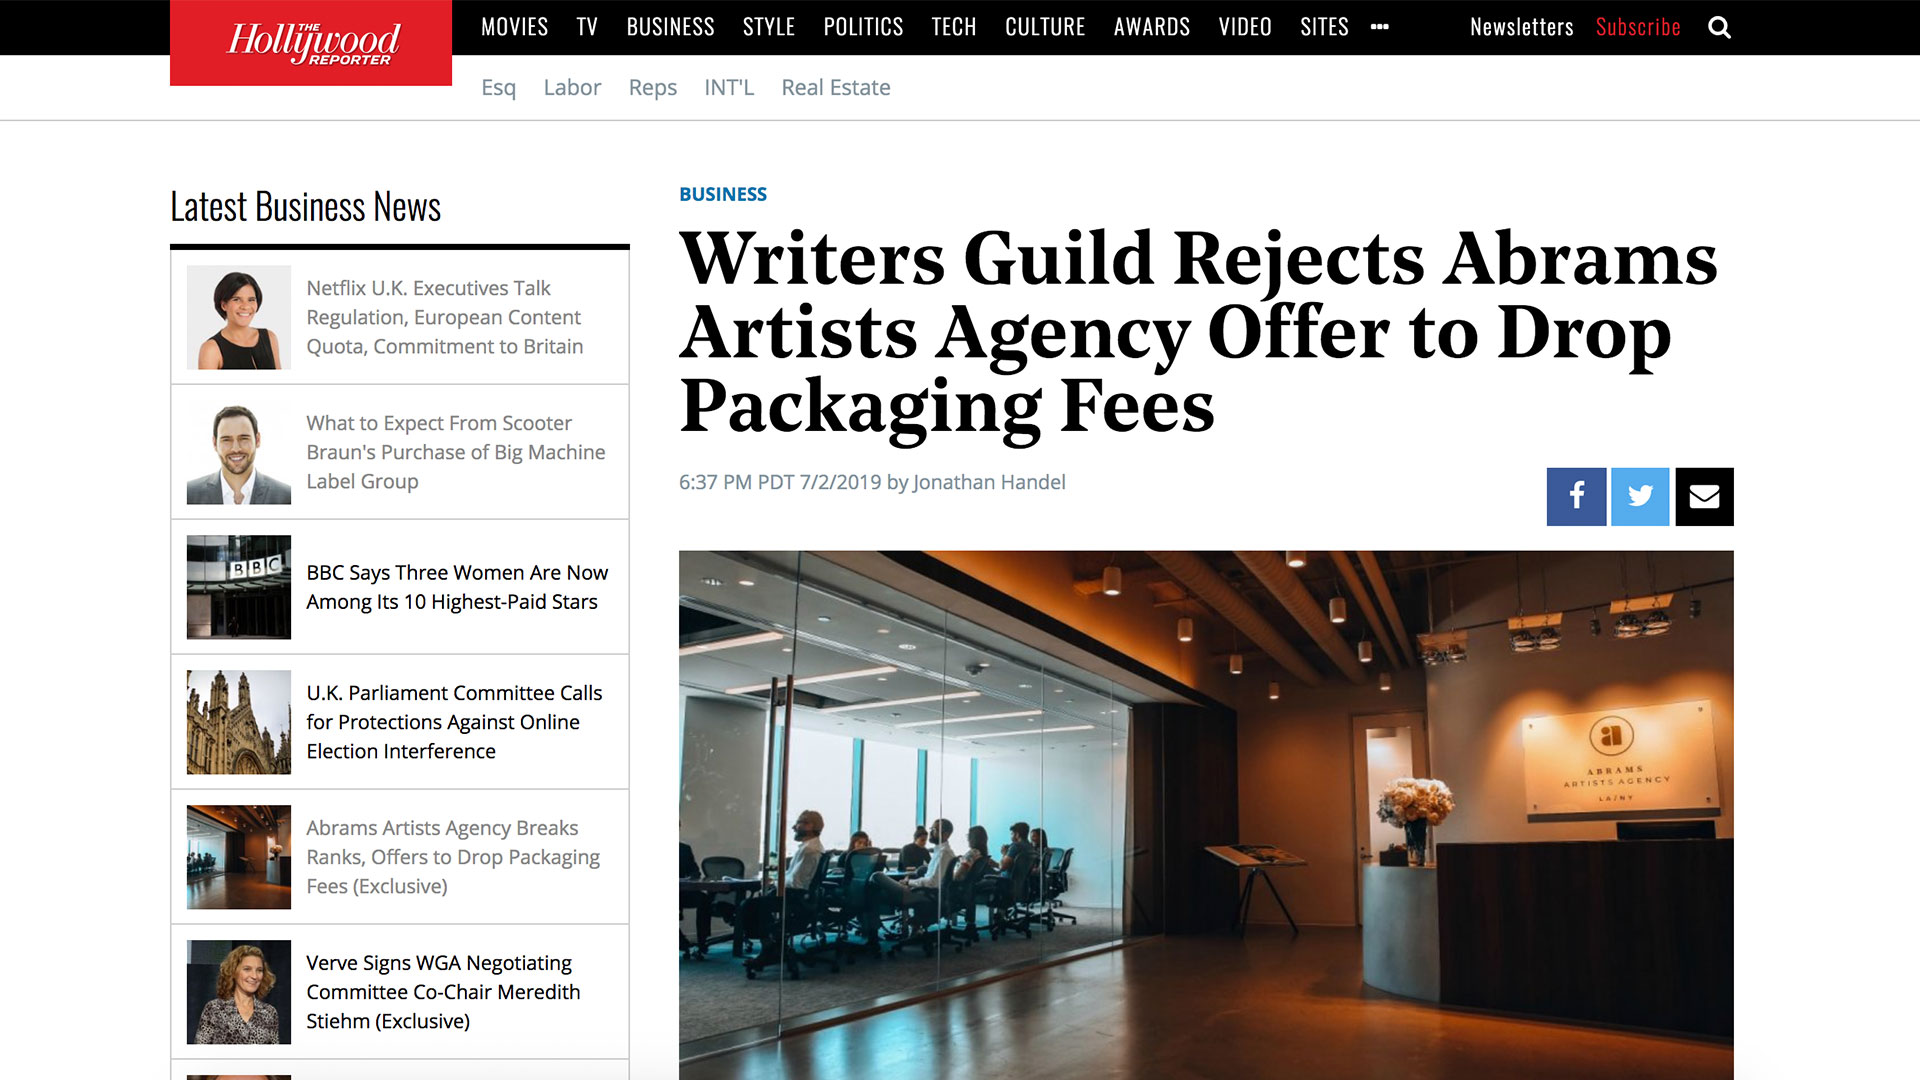 Fairness Rocks News Writers Guild Rejects Abrams Artists Agency Offer to Drop Packaging Fees